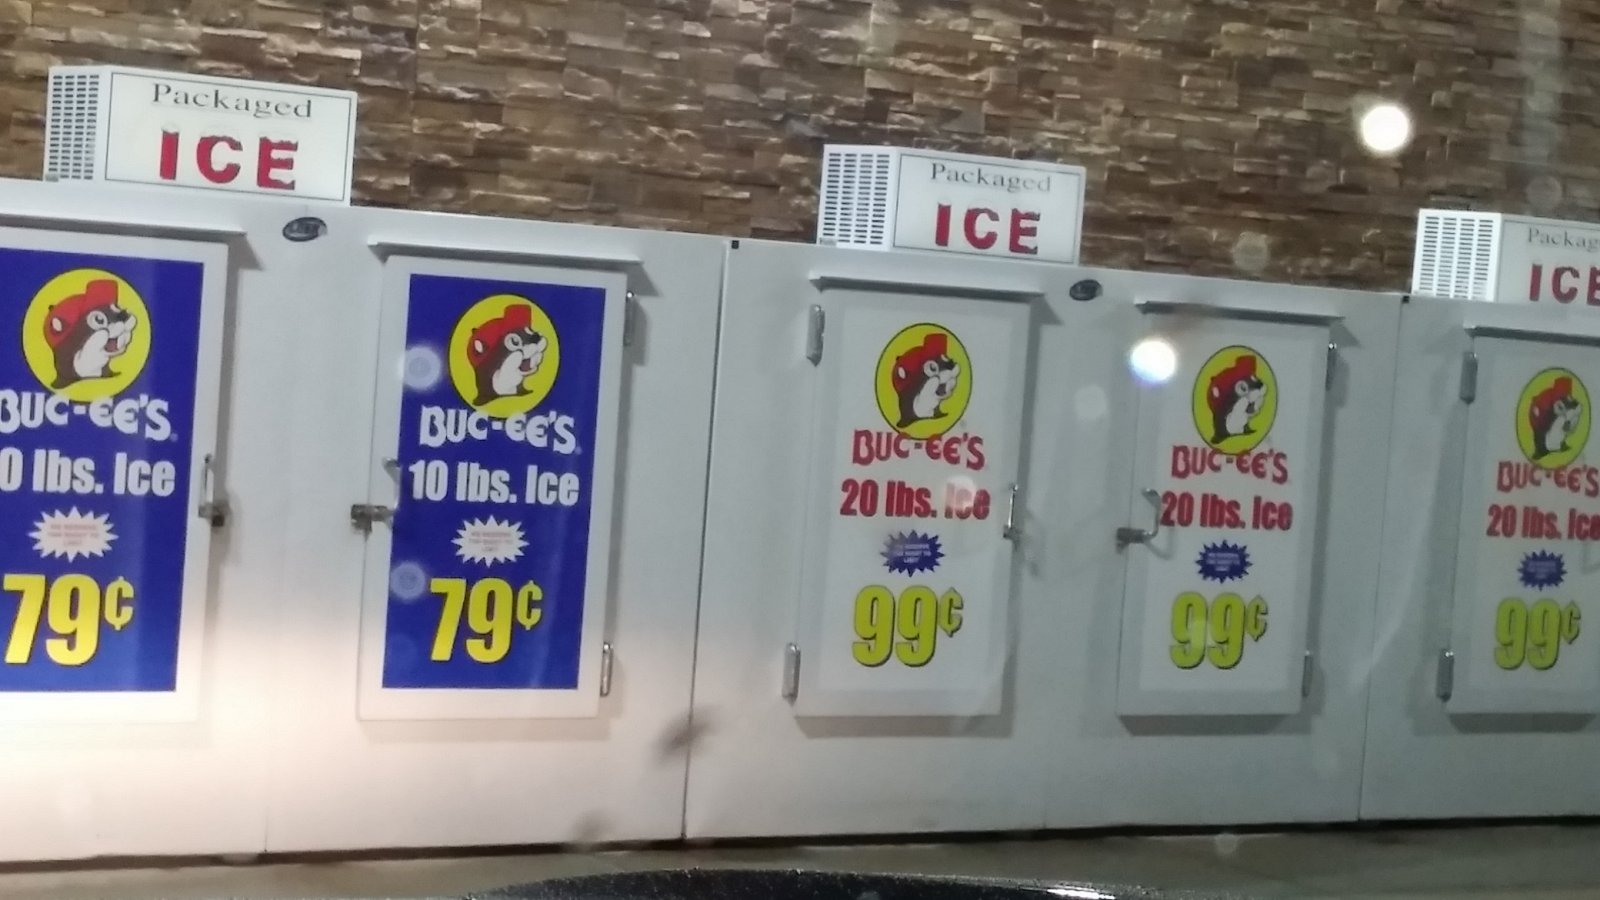 Click image for larger version  Name:BUC-EE's Ice.jpg Views:88 Size:178.4 KB ID:252959